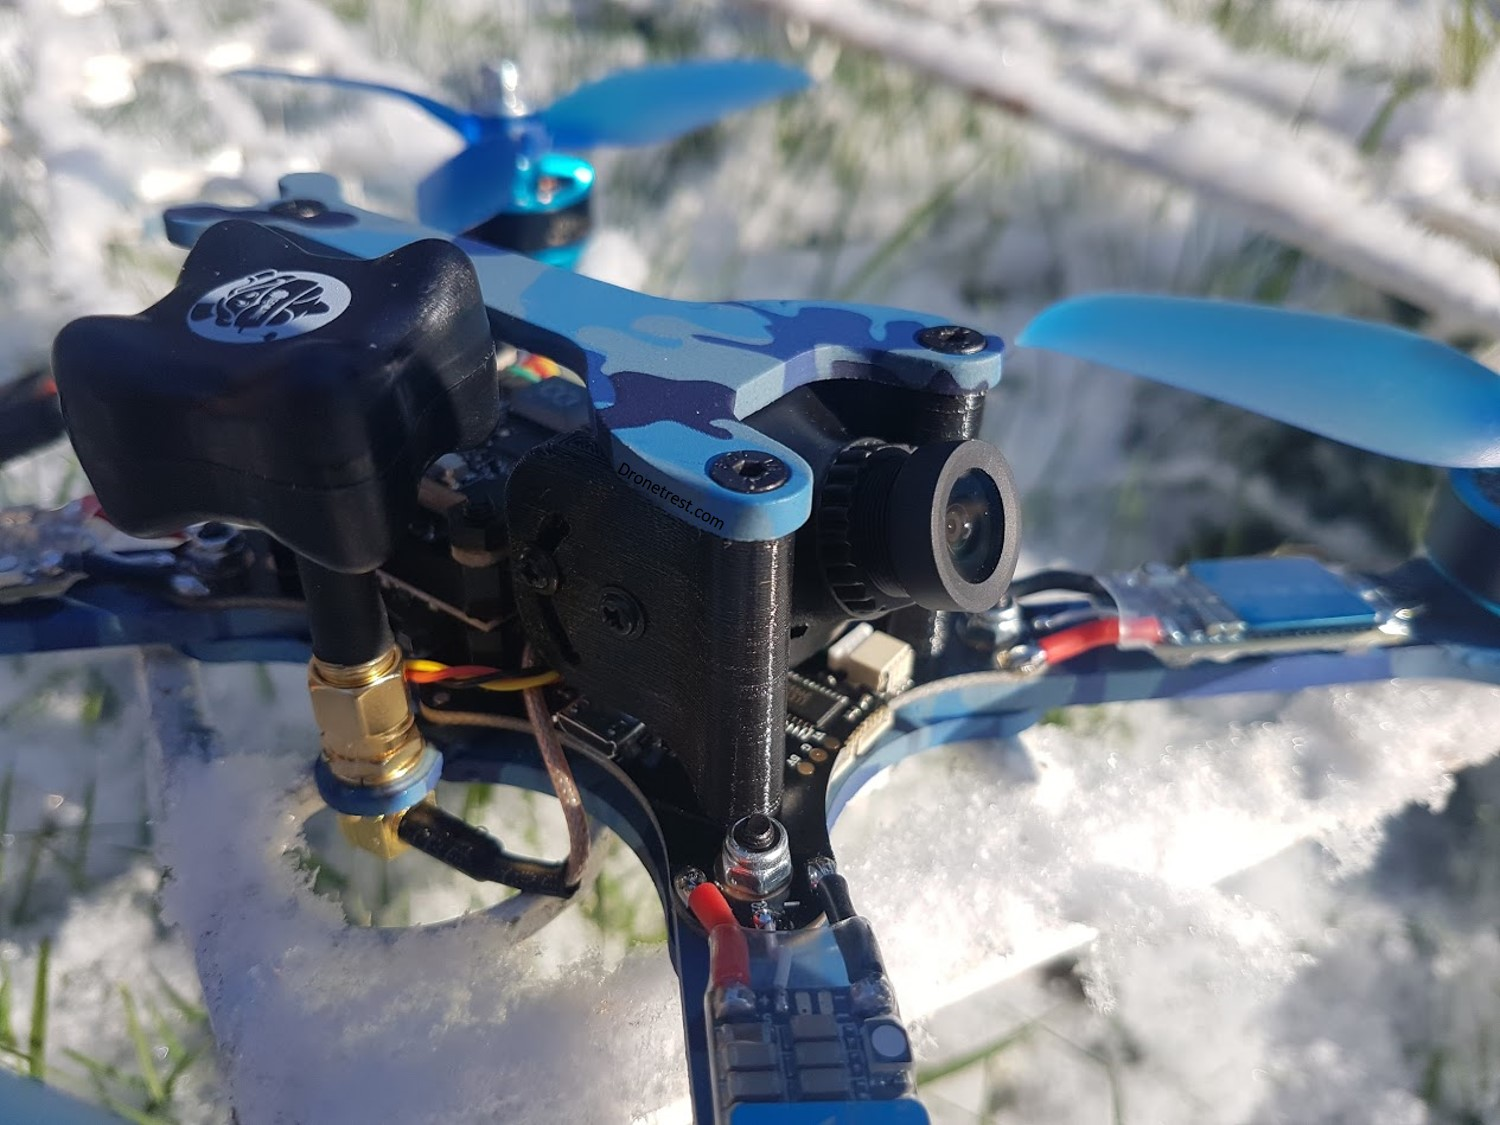 TS215-wizard-FPV-camera